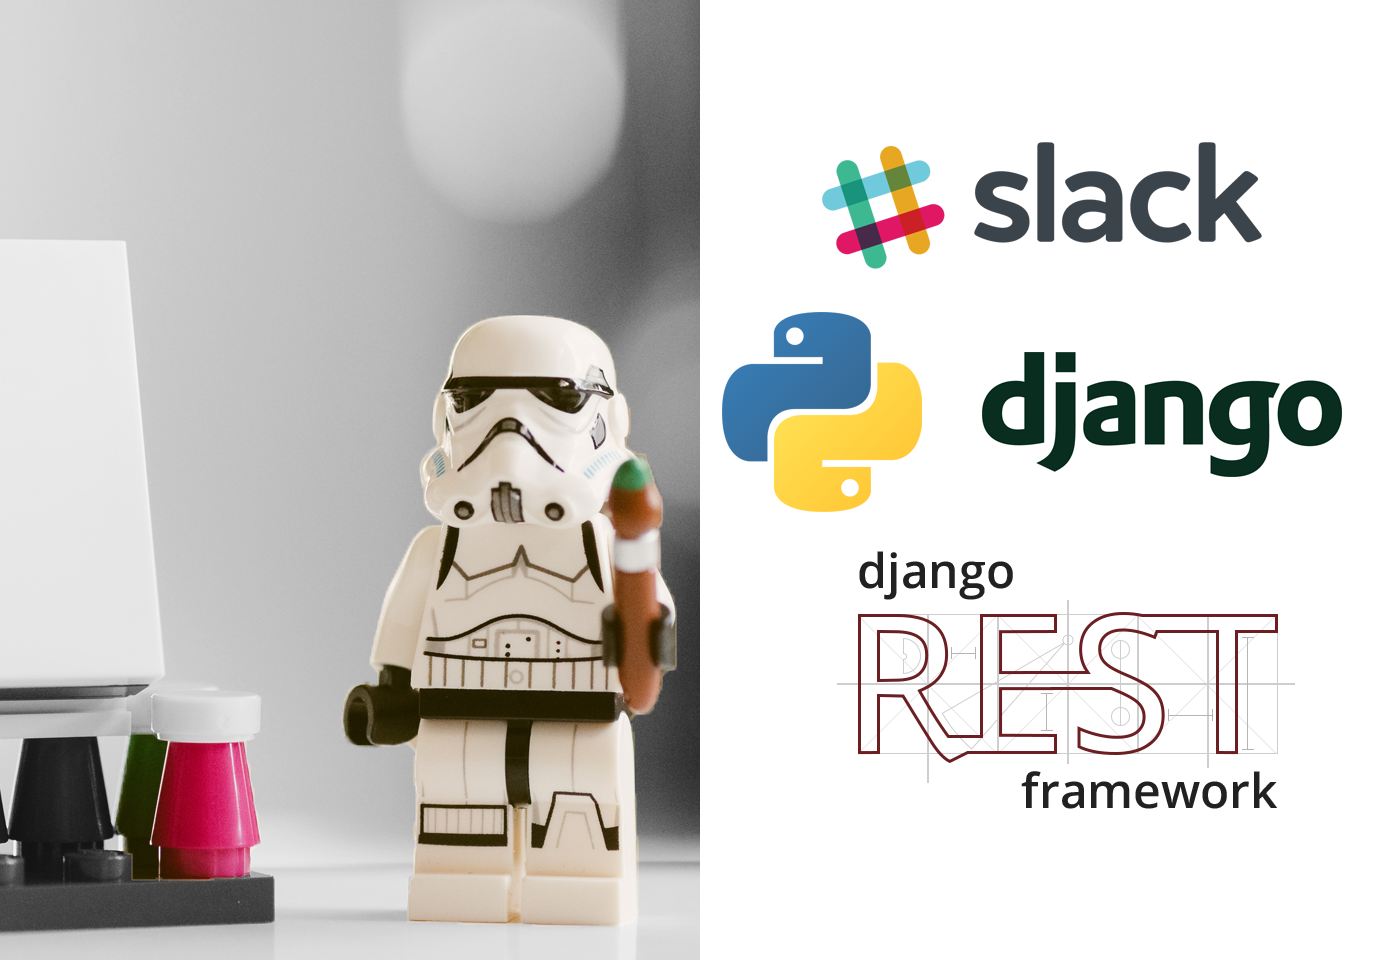 How to build a slack bot with python using slack events api how to build a slack bot with python using slack events api django under 20 minute code included baditri Images